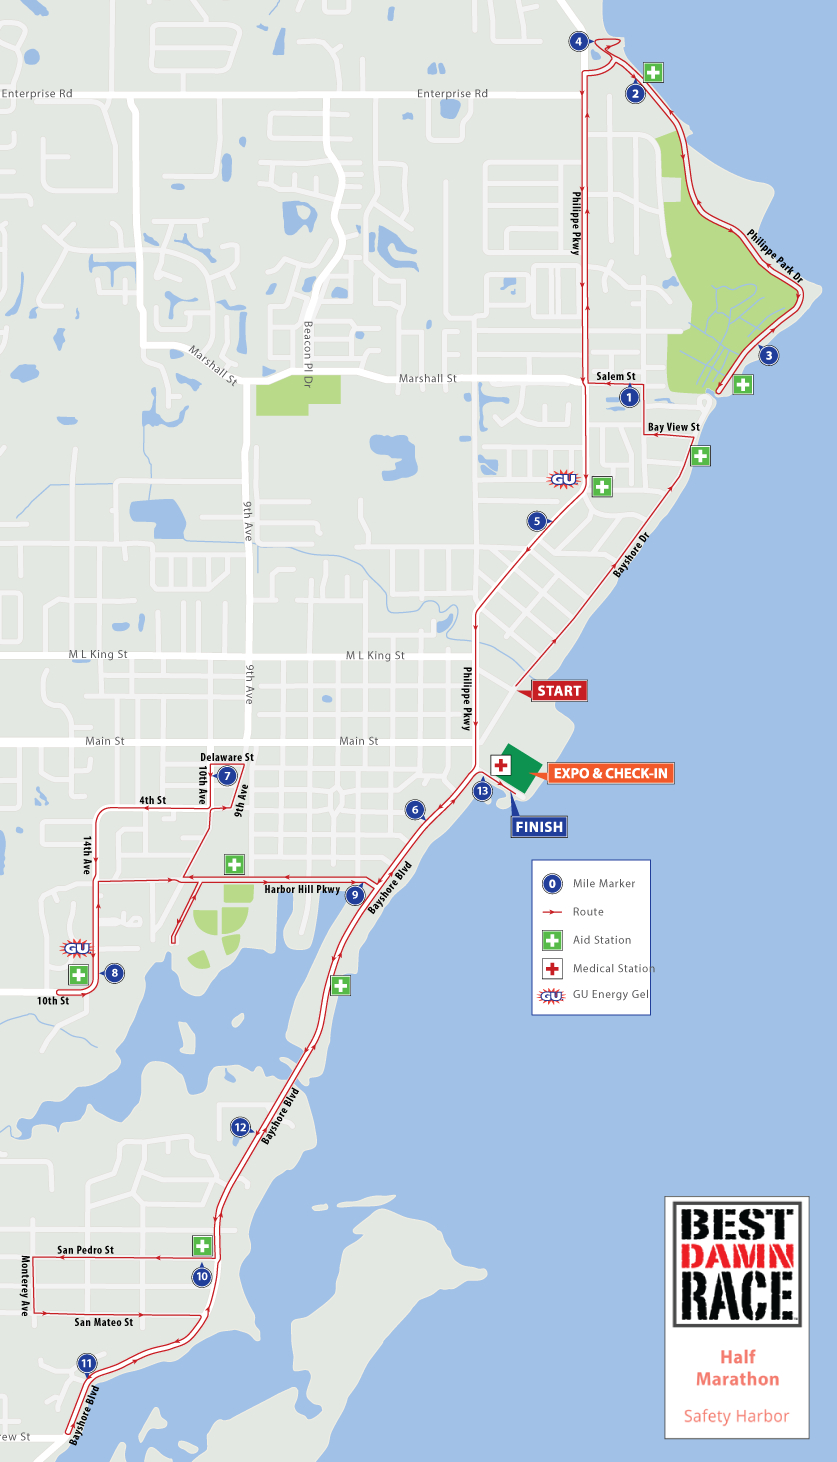 Course Maps - Best Damn Race - Safety Harbor, Fl - Safety Harbor Florida Map